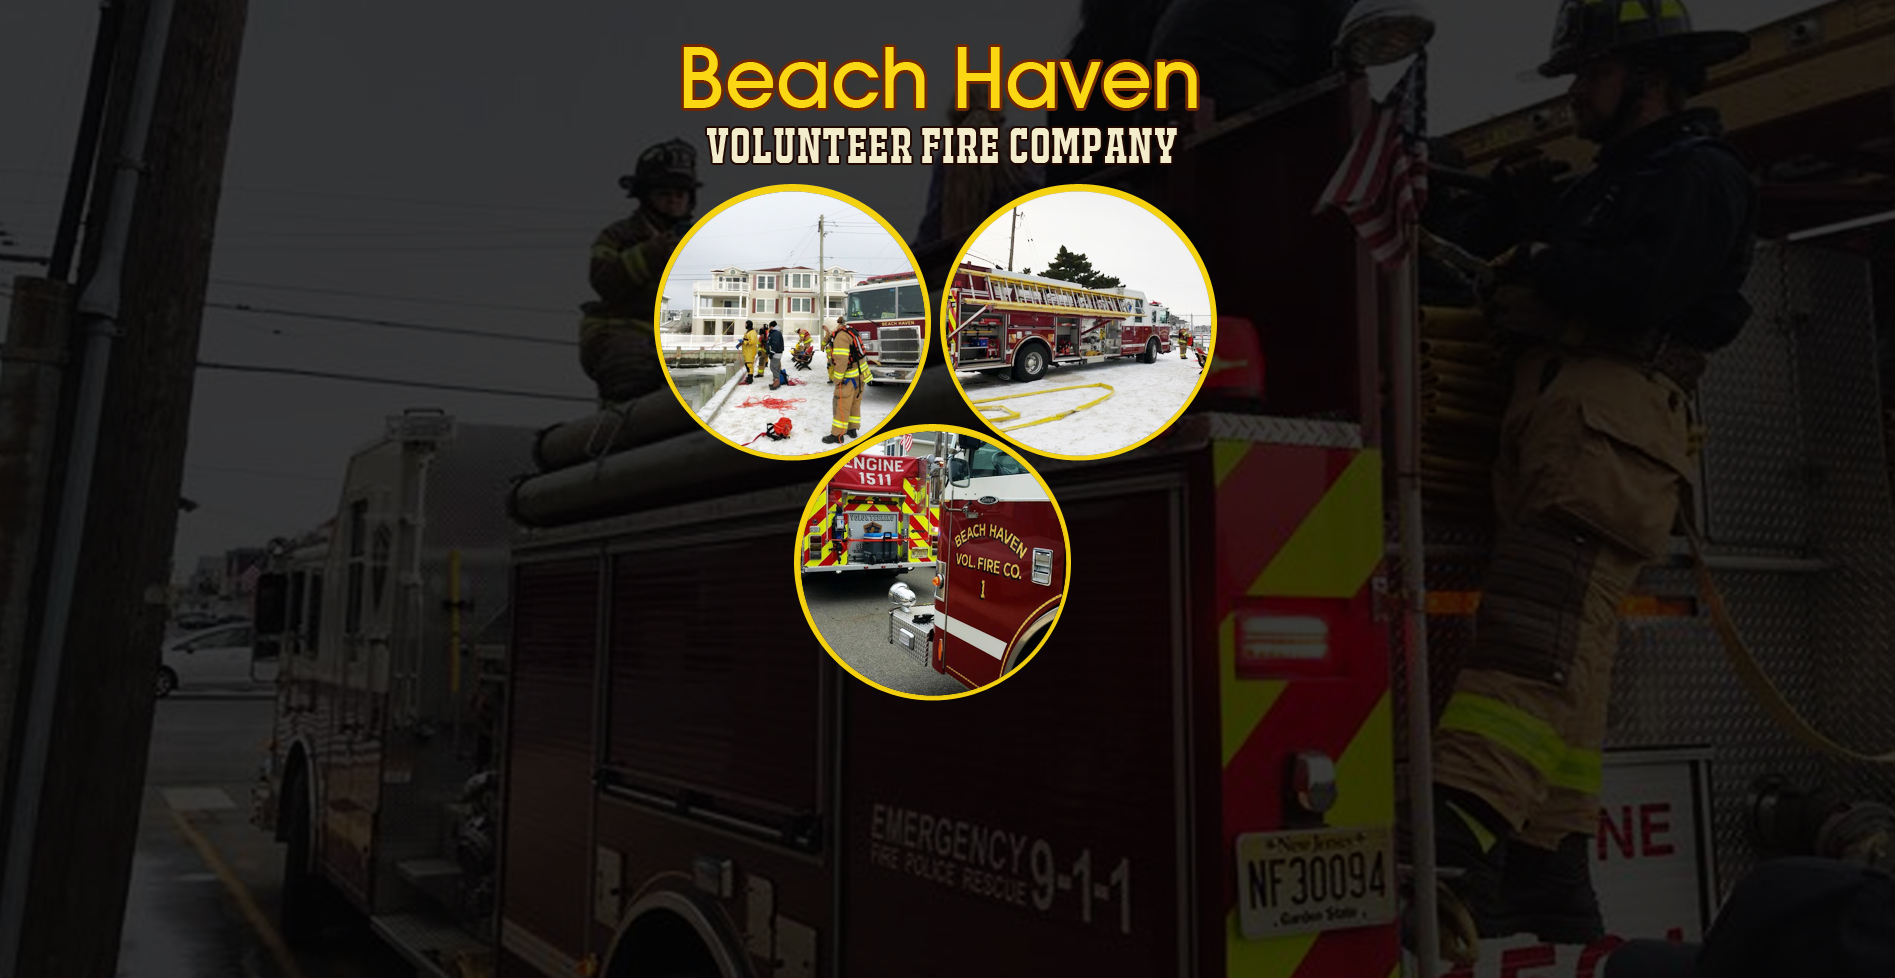 Beach Haven Volunteer Fire Company